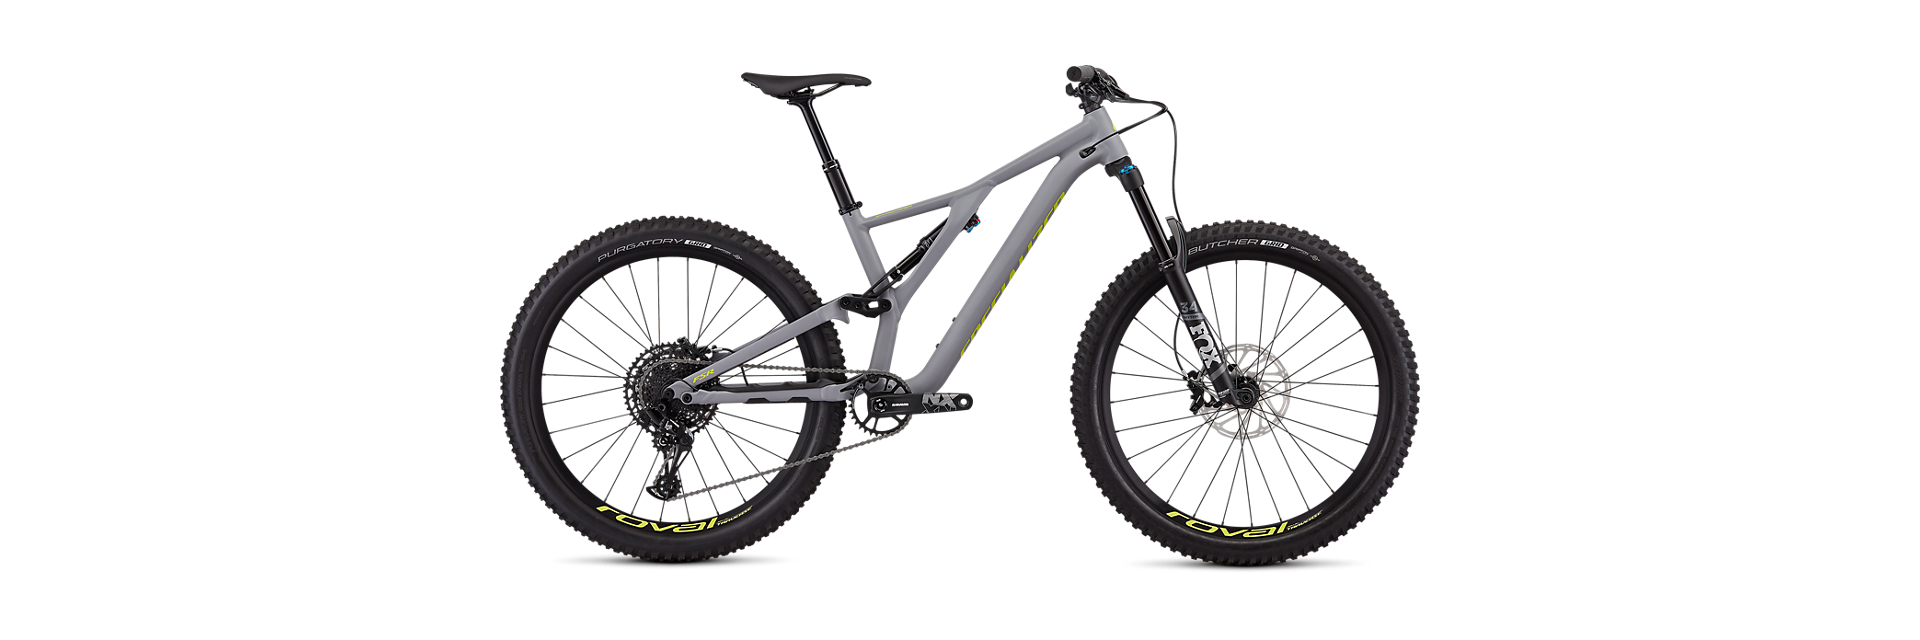 "2019 Specialized Stumpjumper 27.5    Type:  Full Suspension Mountain Bike  | Frame Size:  Inline/Unisex Large  Wheel Size:  27.5  | Fit:  Med 5'6""-5'11"",Lrg 5'10""-6'2"", XL 6'1""-6'5""  